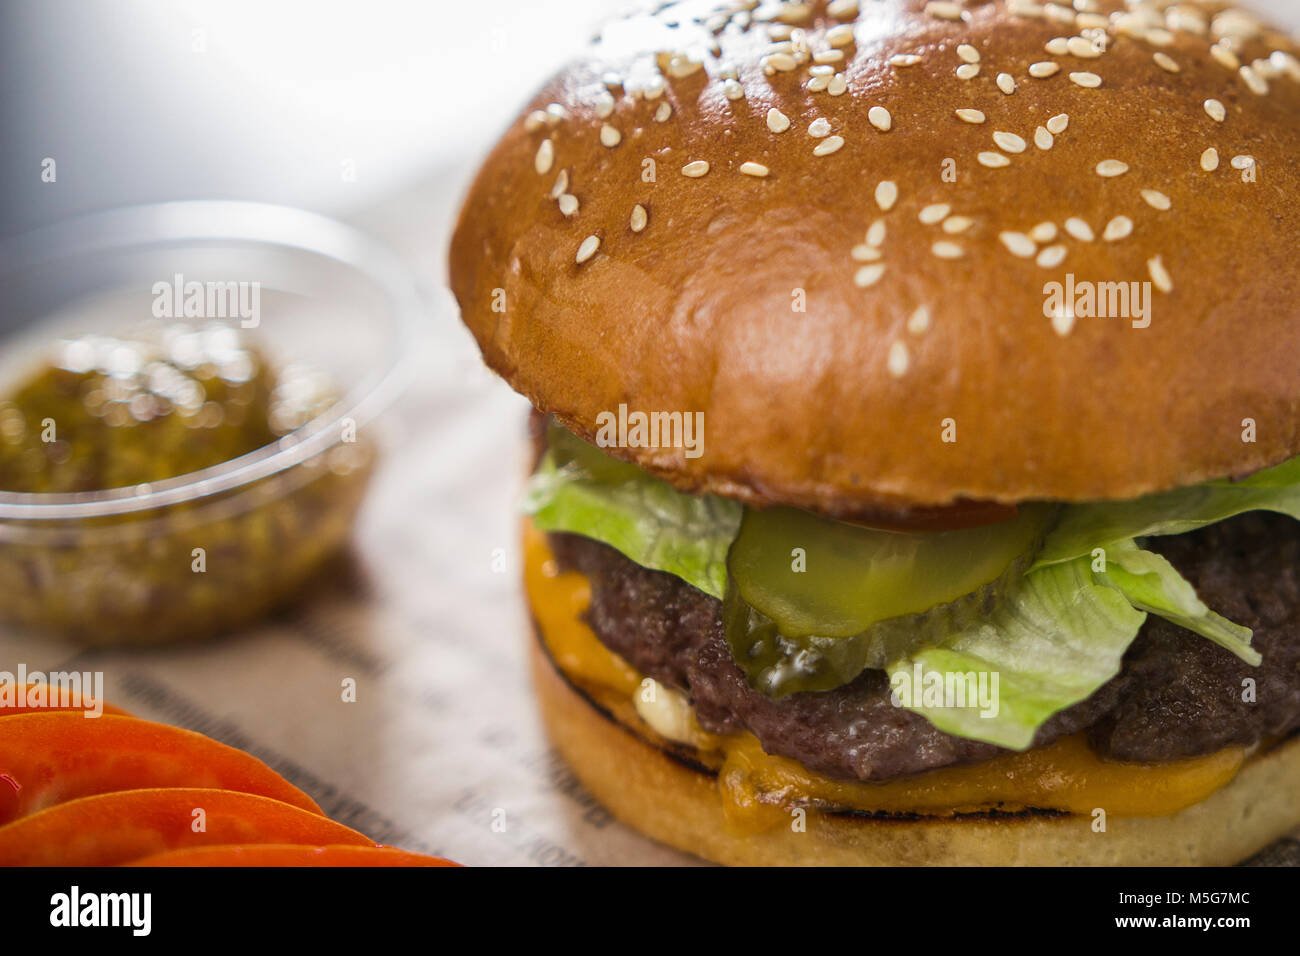 Big tasty burger with mustard on the table - Stock Image